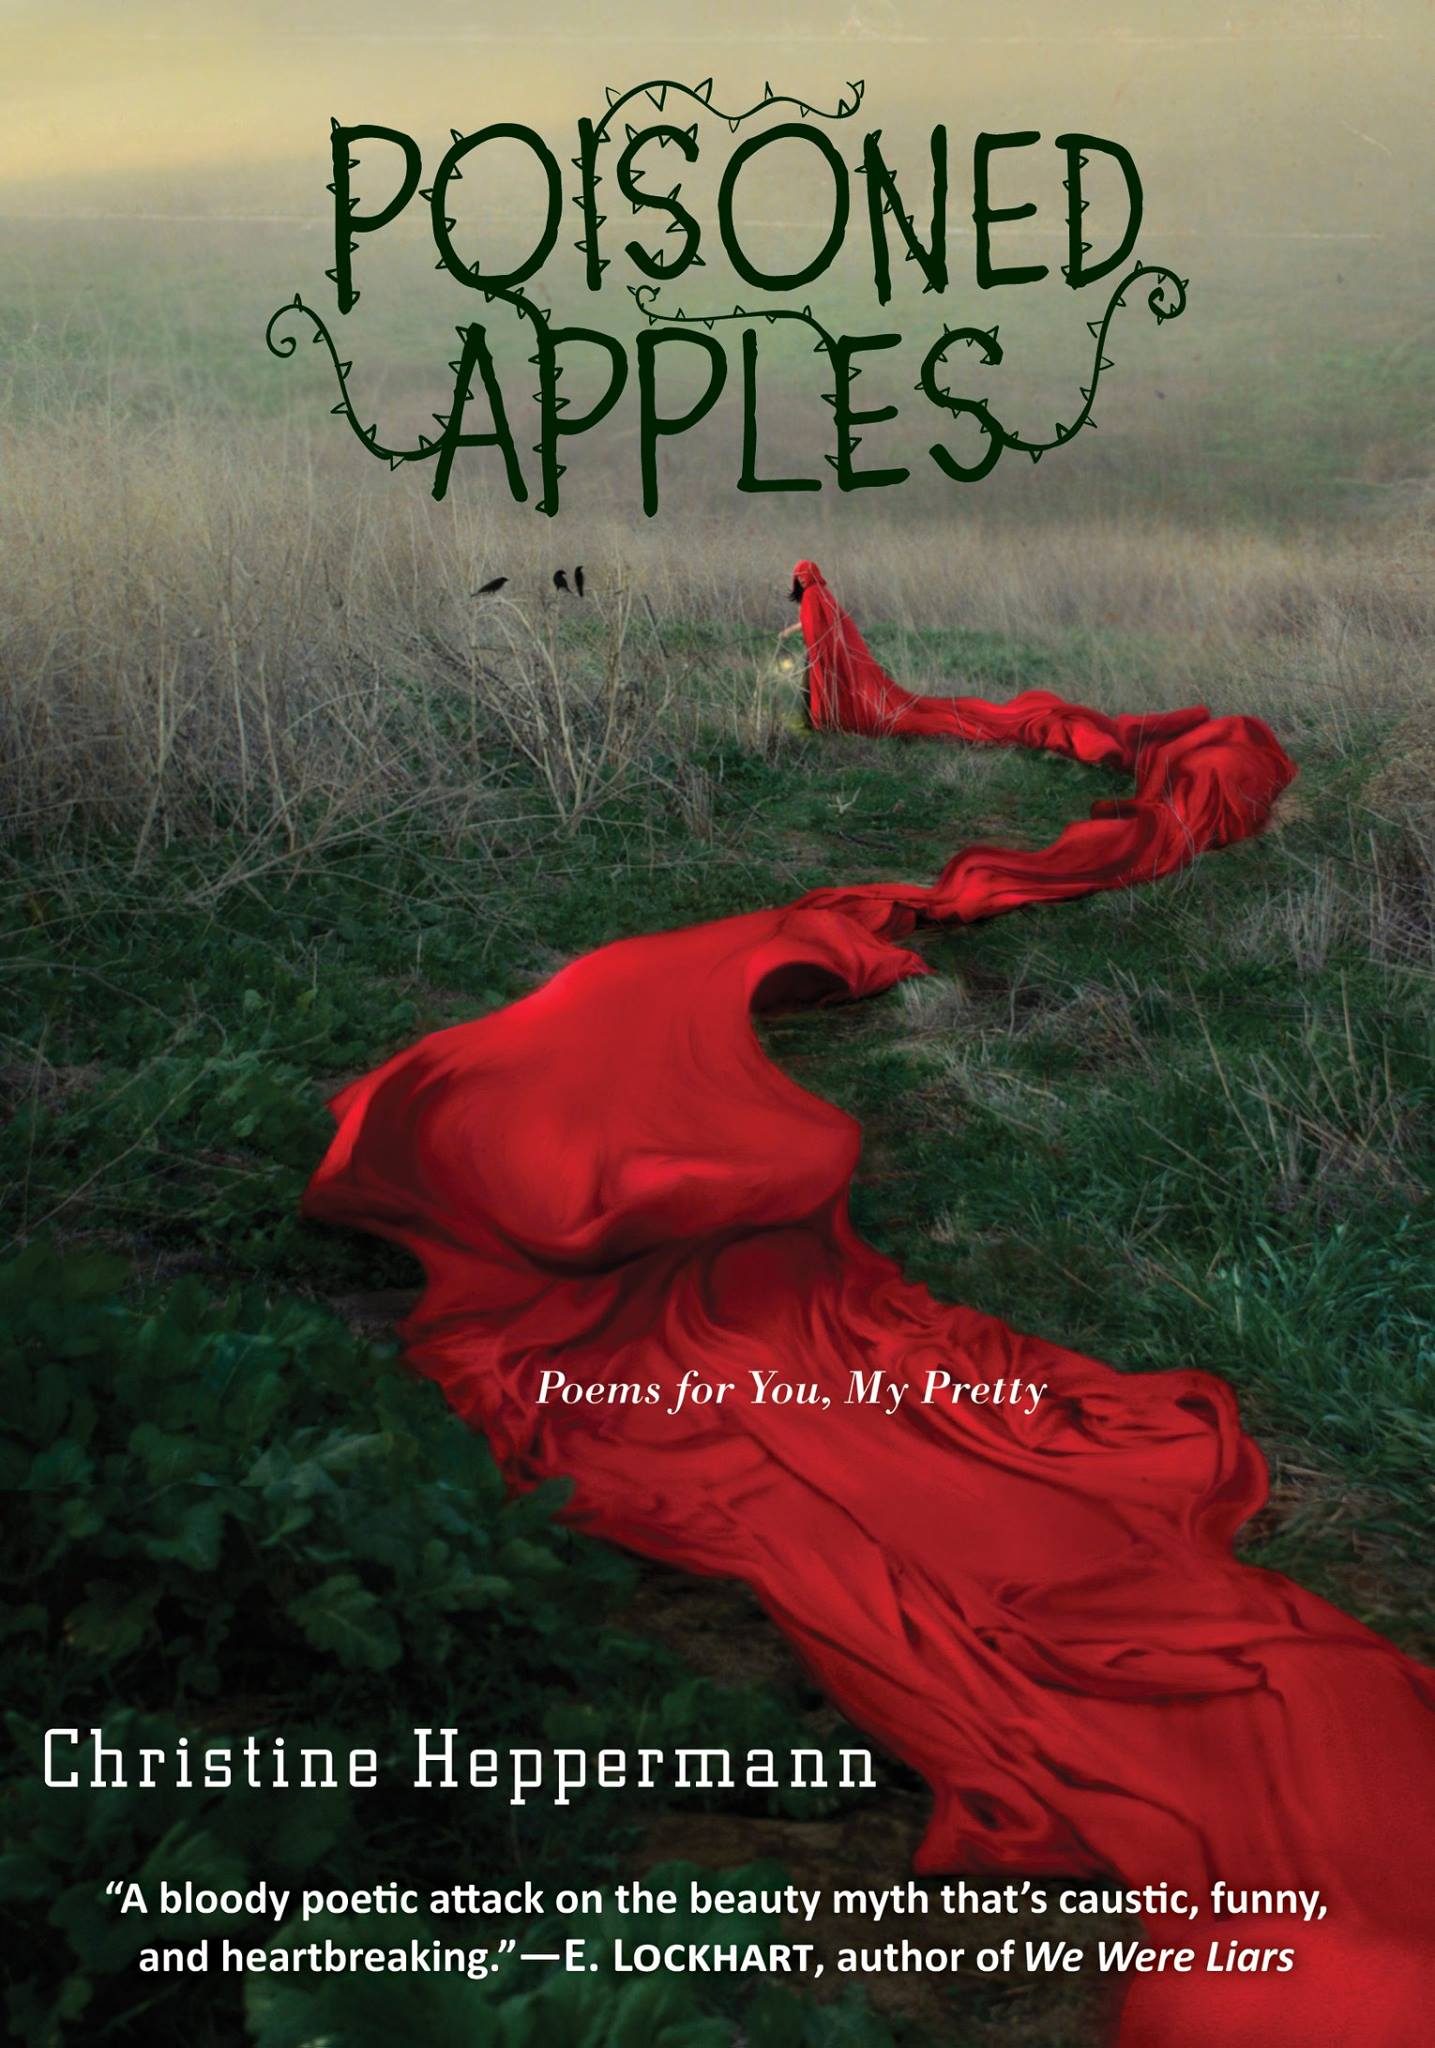 Poisoned Apples: Poems for You, My Pretty by Christine Heppermann